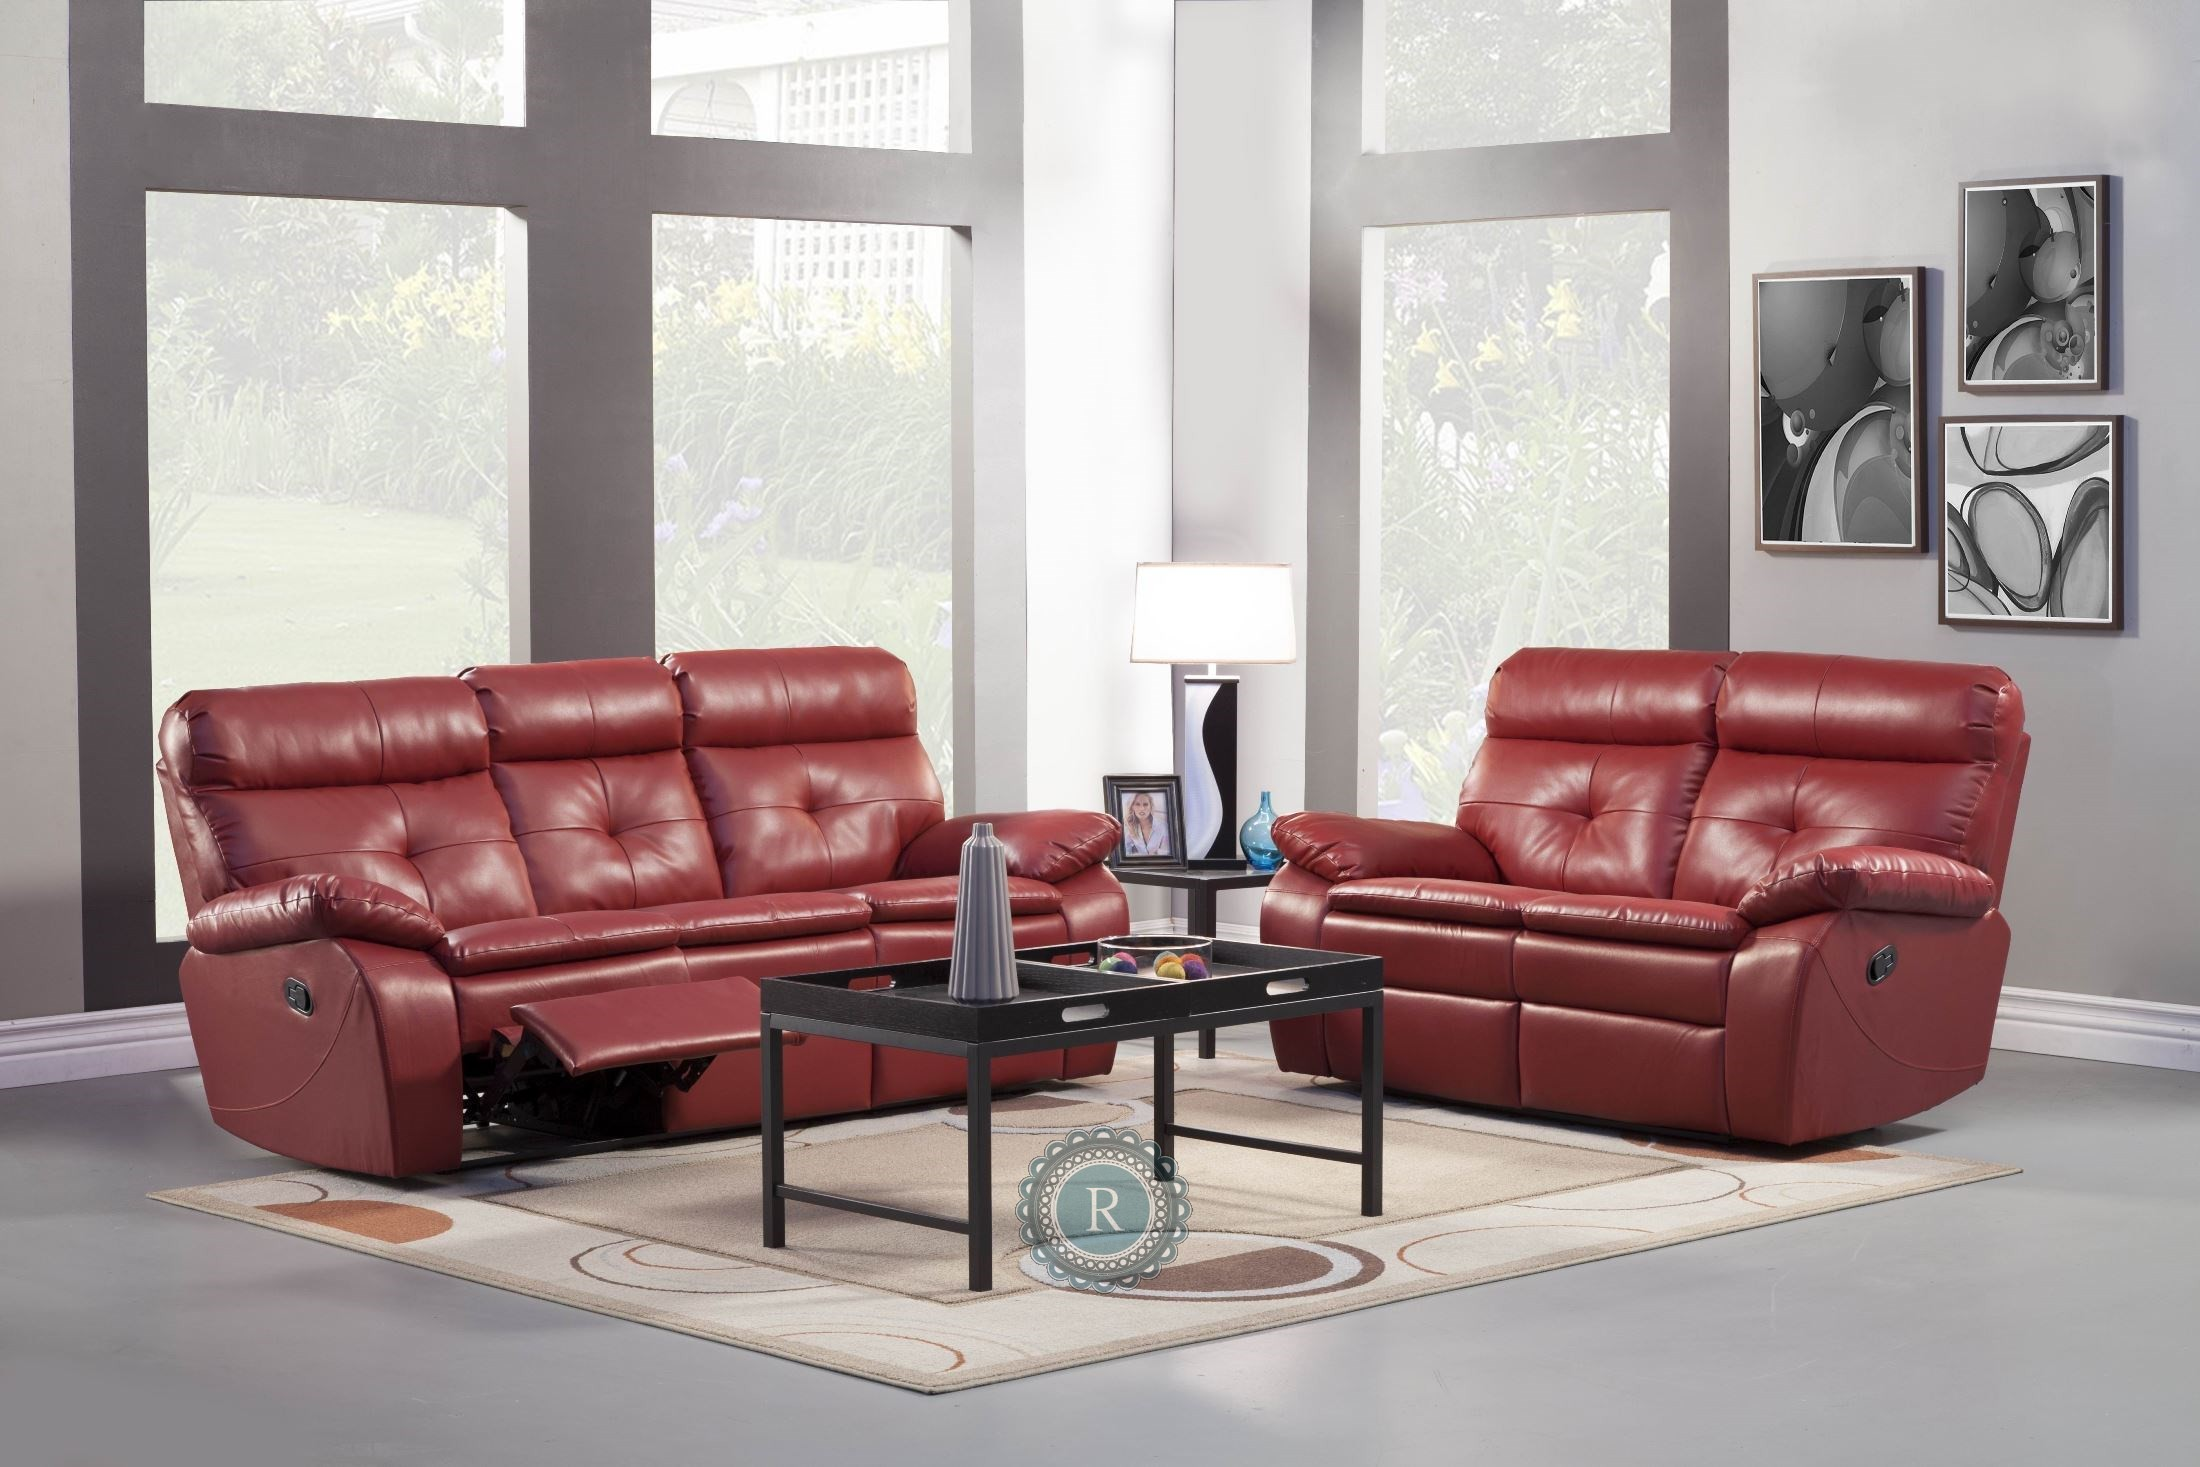 wallace red living room set 9604red 3 2 homelegance. Black Bedroom Furniture Sets. Home Design Ideas